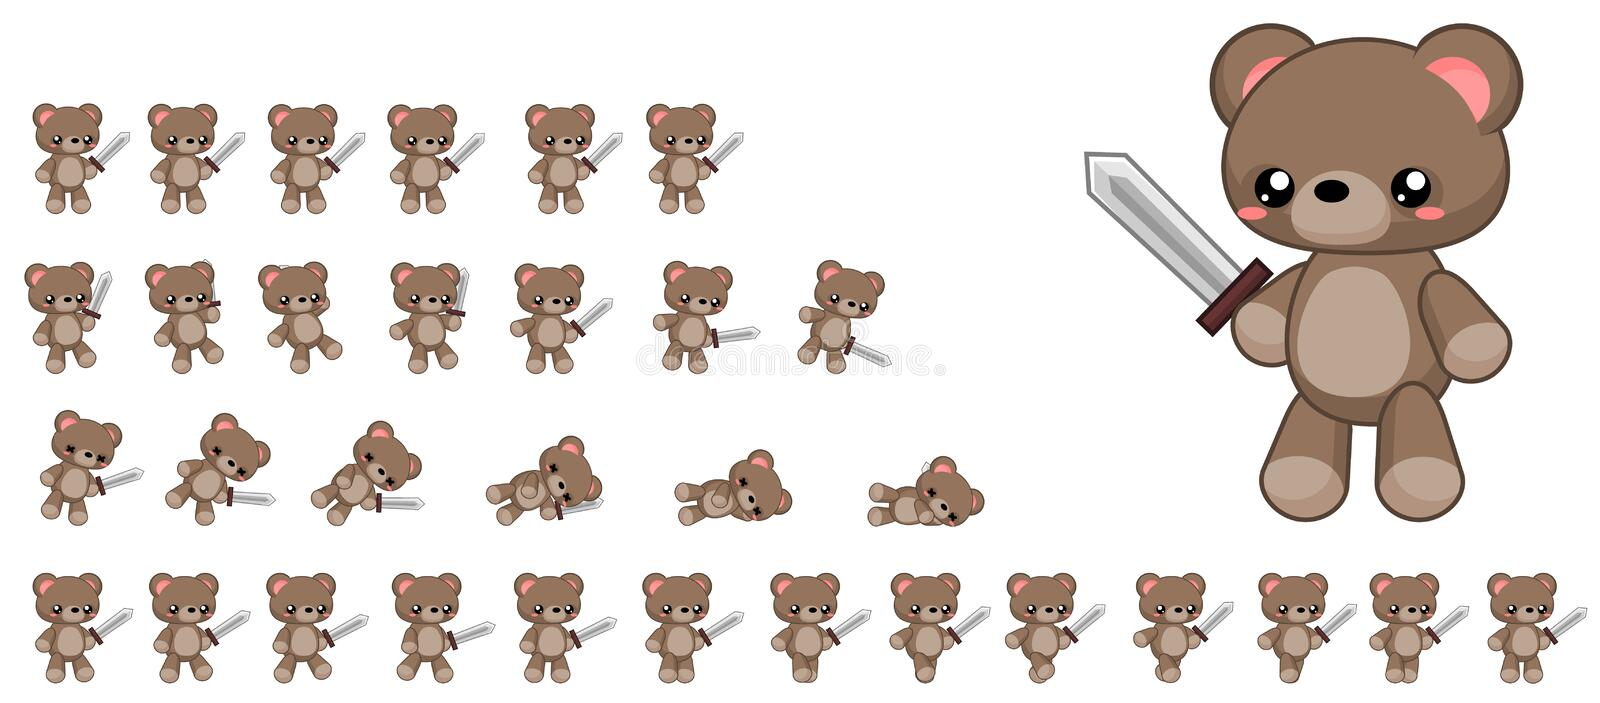 Animated Cute Bear Character Sprites vector illustration